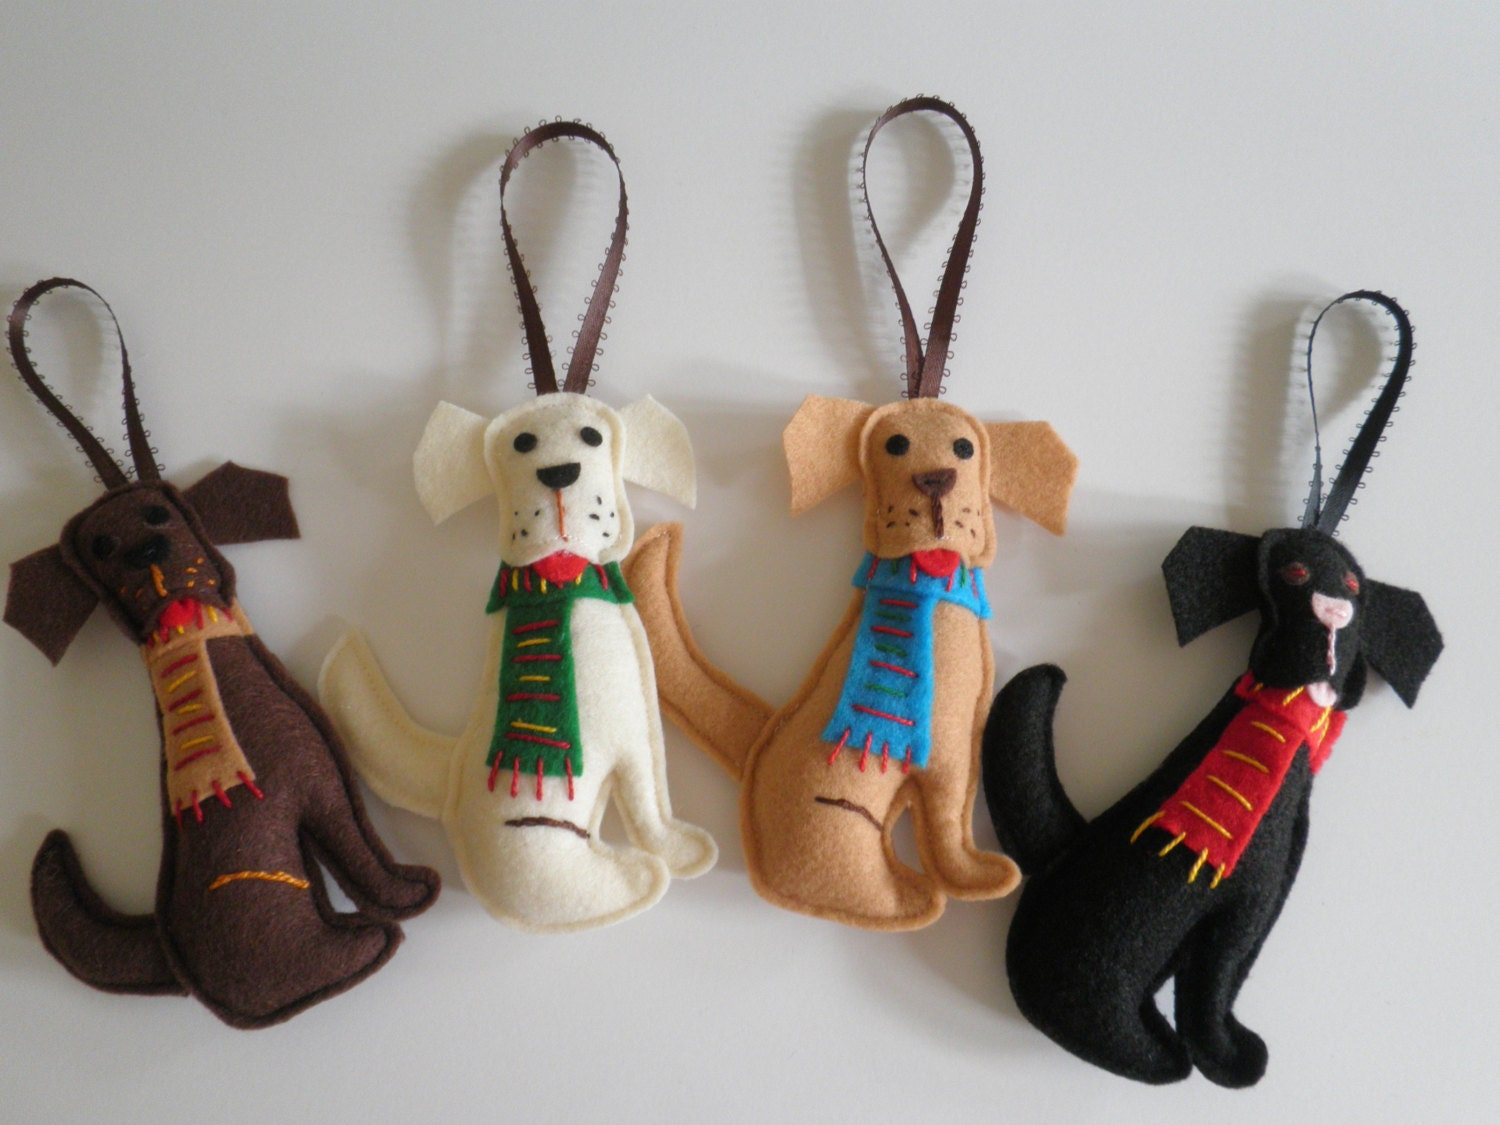 New Item - Big Loveable Labs Handmade Dog Christmas tree Ornaments Choose From 4 Colors At Just 12.99 Each